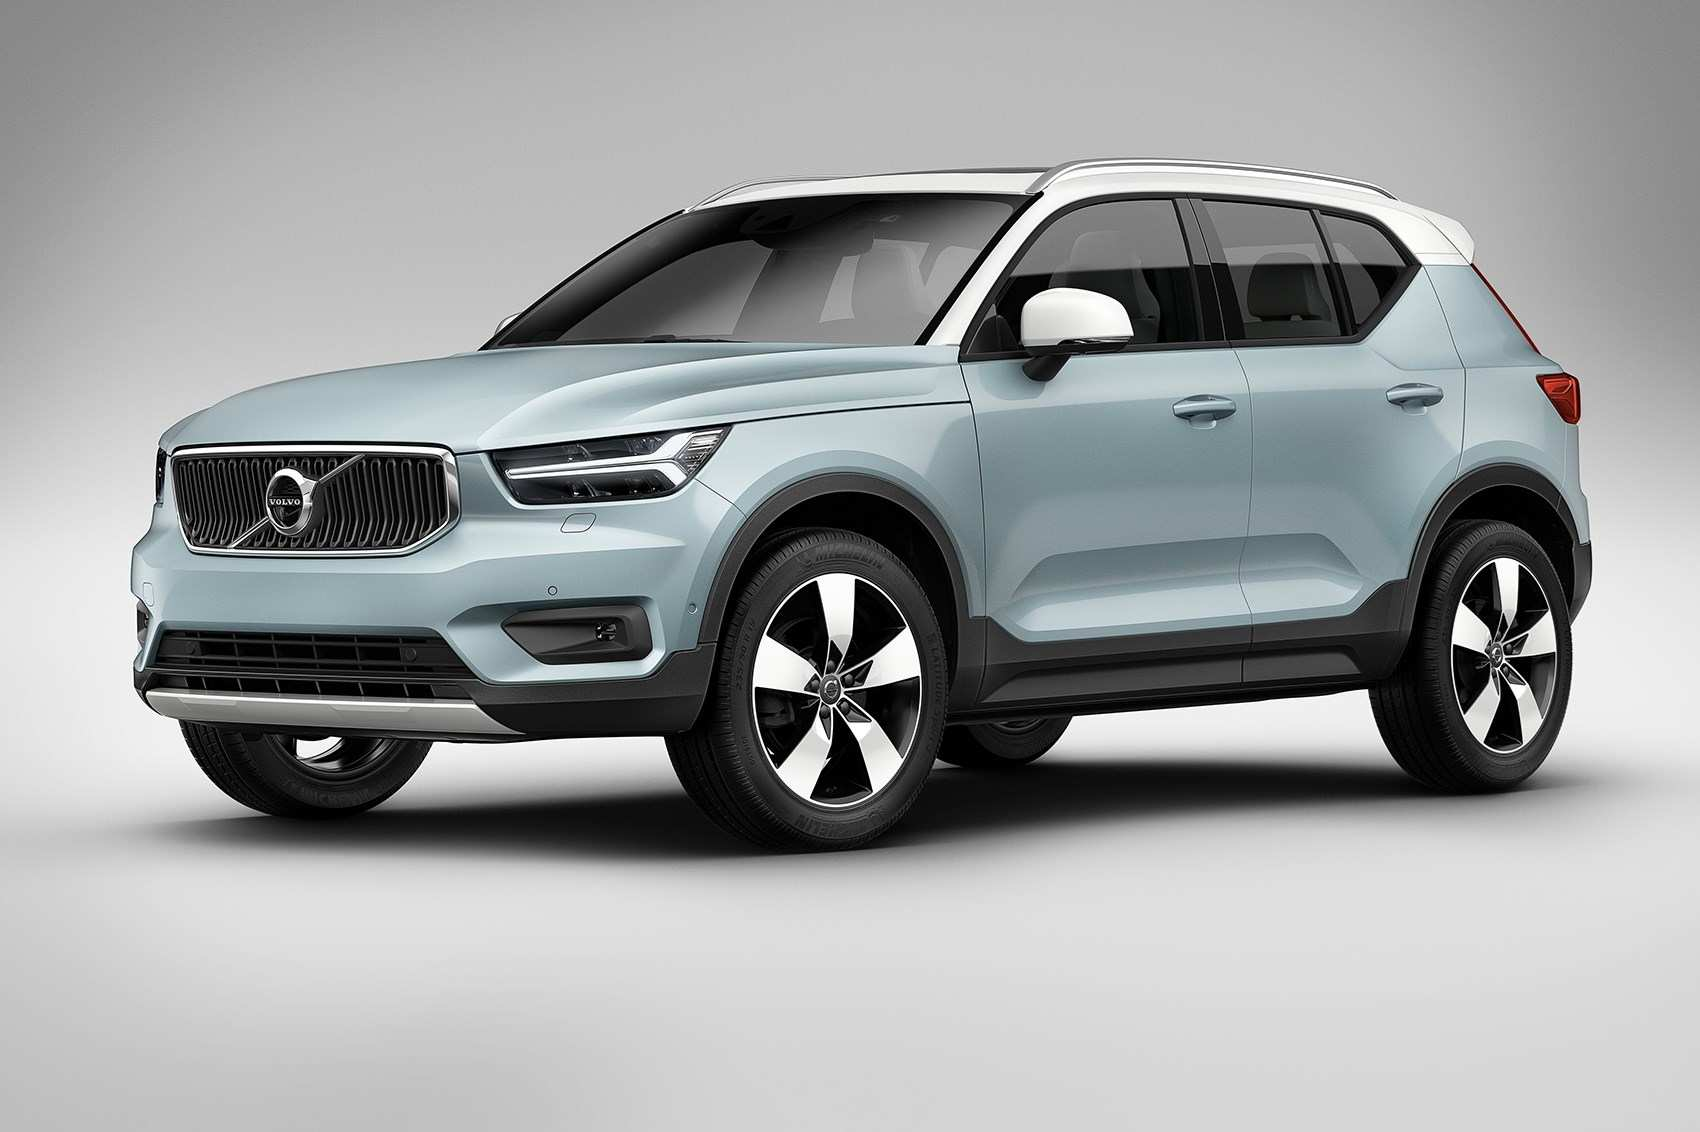 94 New Volvo Engines 2020 Specs and Review for Volvo Engines 2020